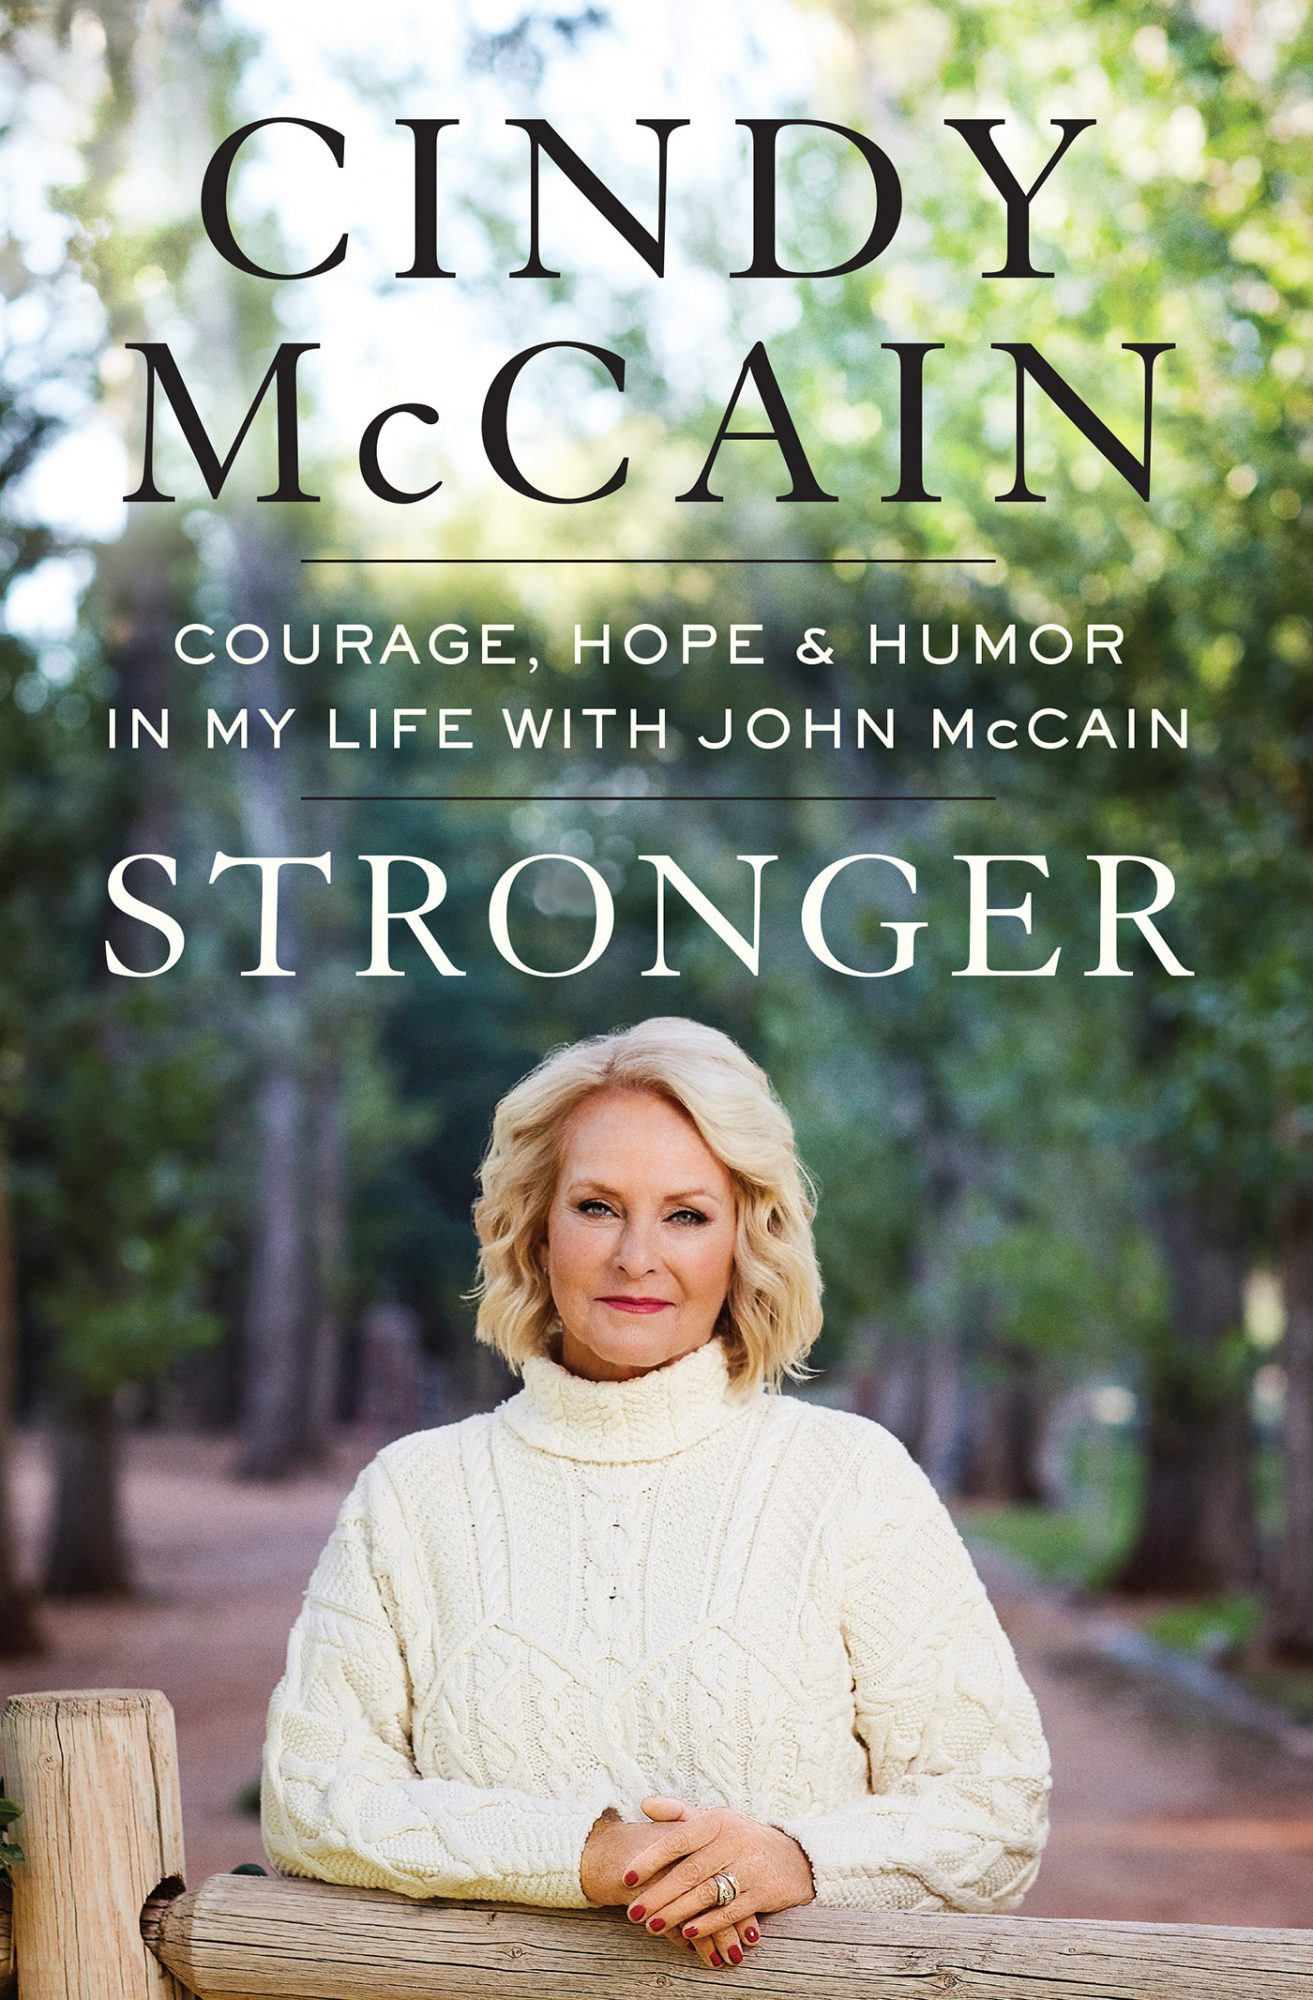 Stronger COURAGE, HOPE, AND HUMOR IN MY LIFE WITH JOHN MCCAIN By CINDY MCCAIN